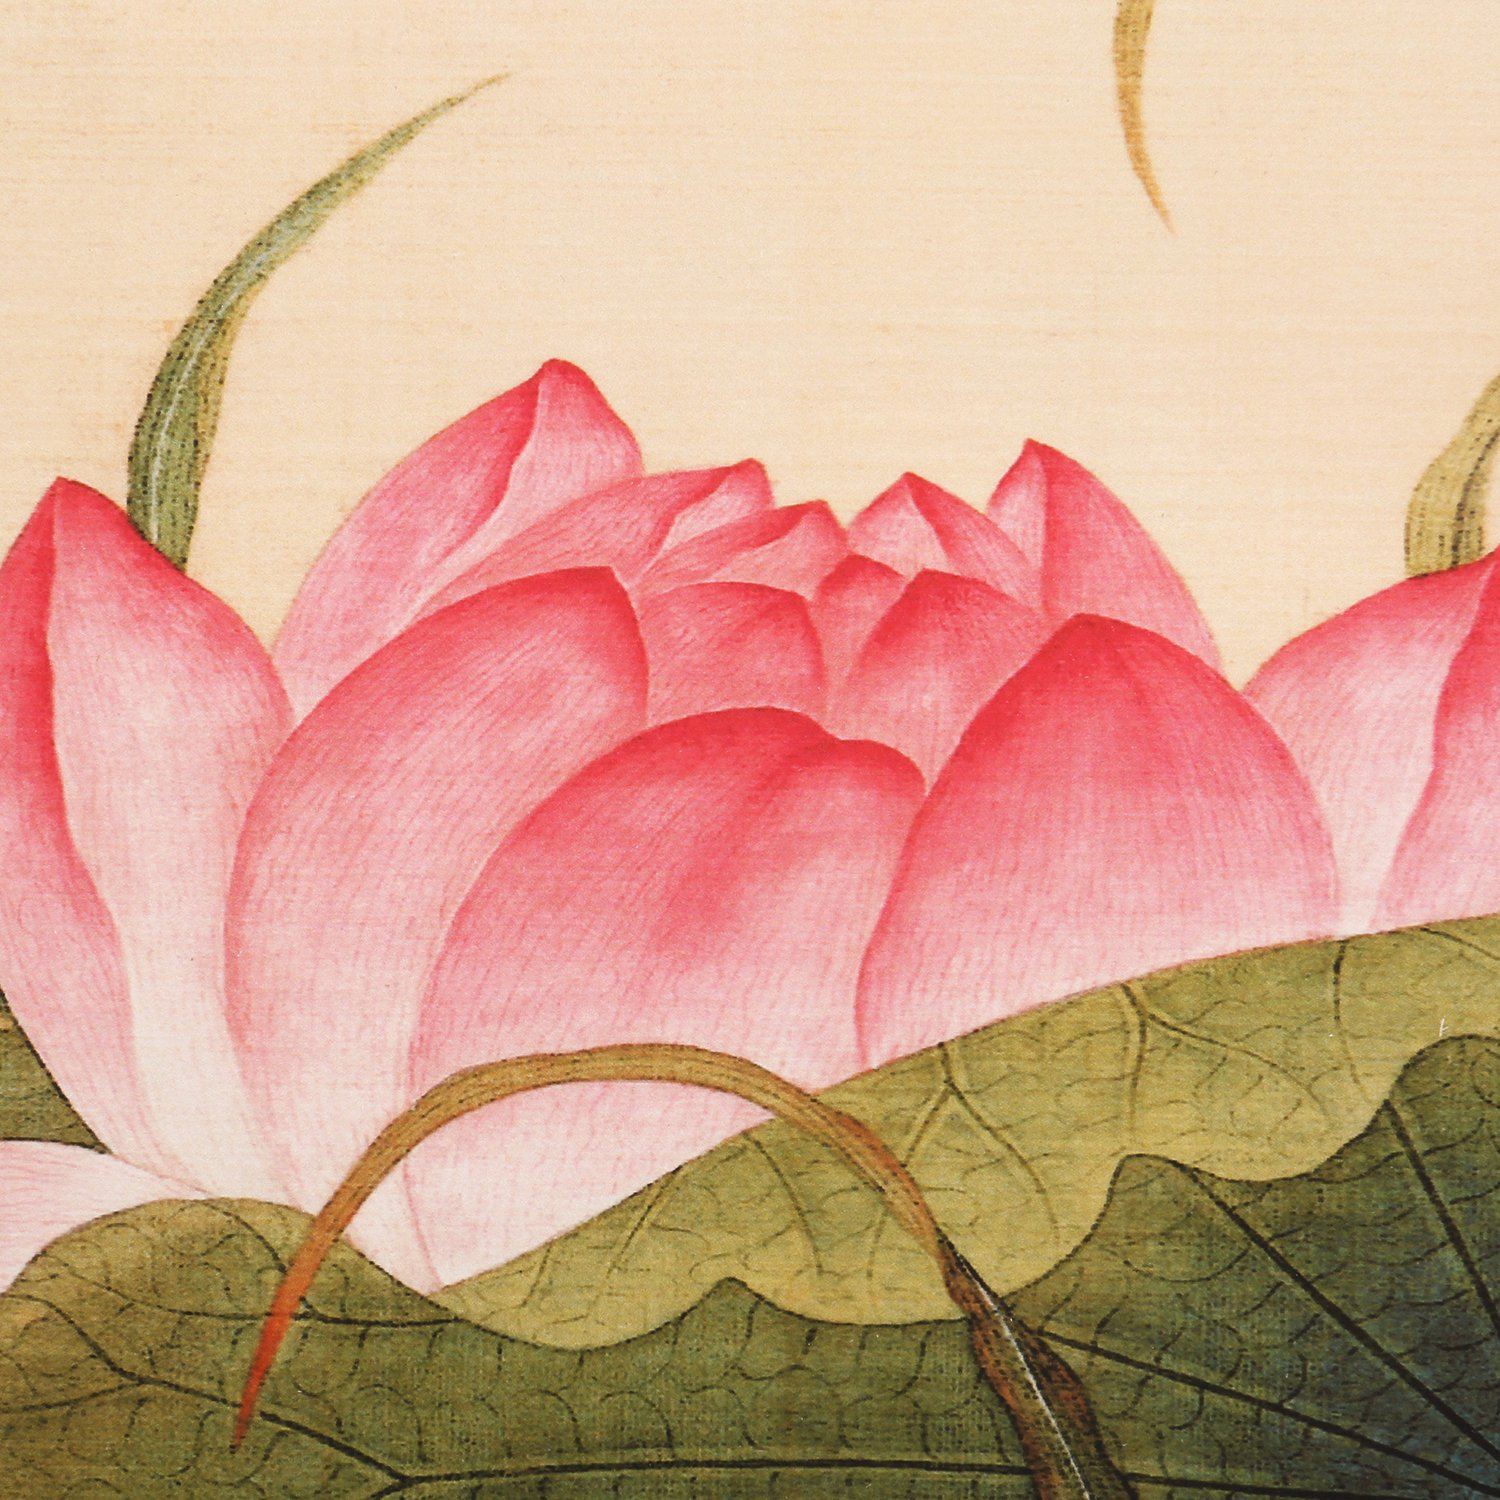 Amazon ink wash framed modern reproduction chinese painting amazon ink wash framed modern reproduction chinese painting white pink buddha lotus flower decor flowers and dragonfly paintings floral artwork fine izmirmasajfo